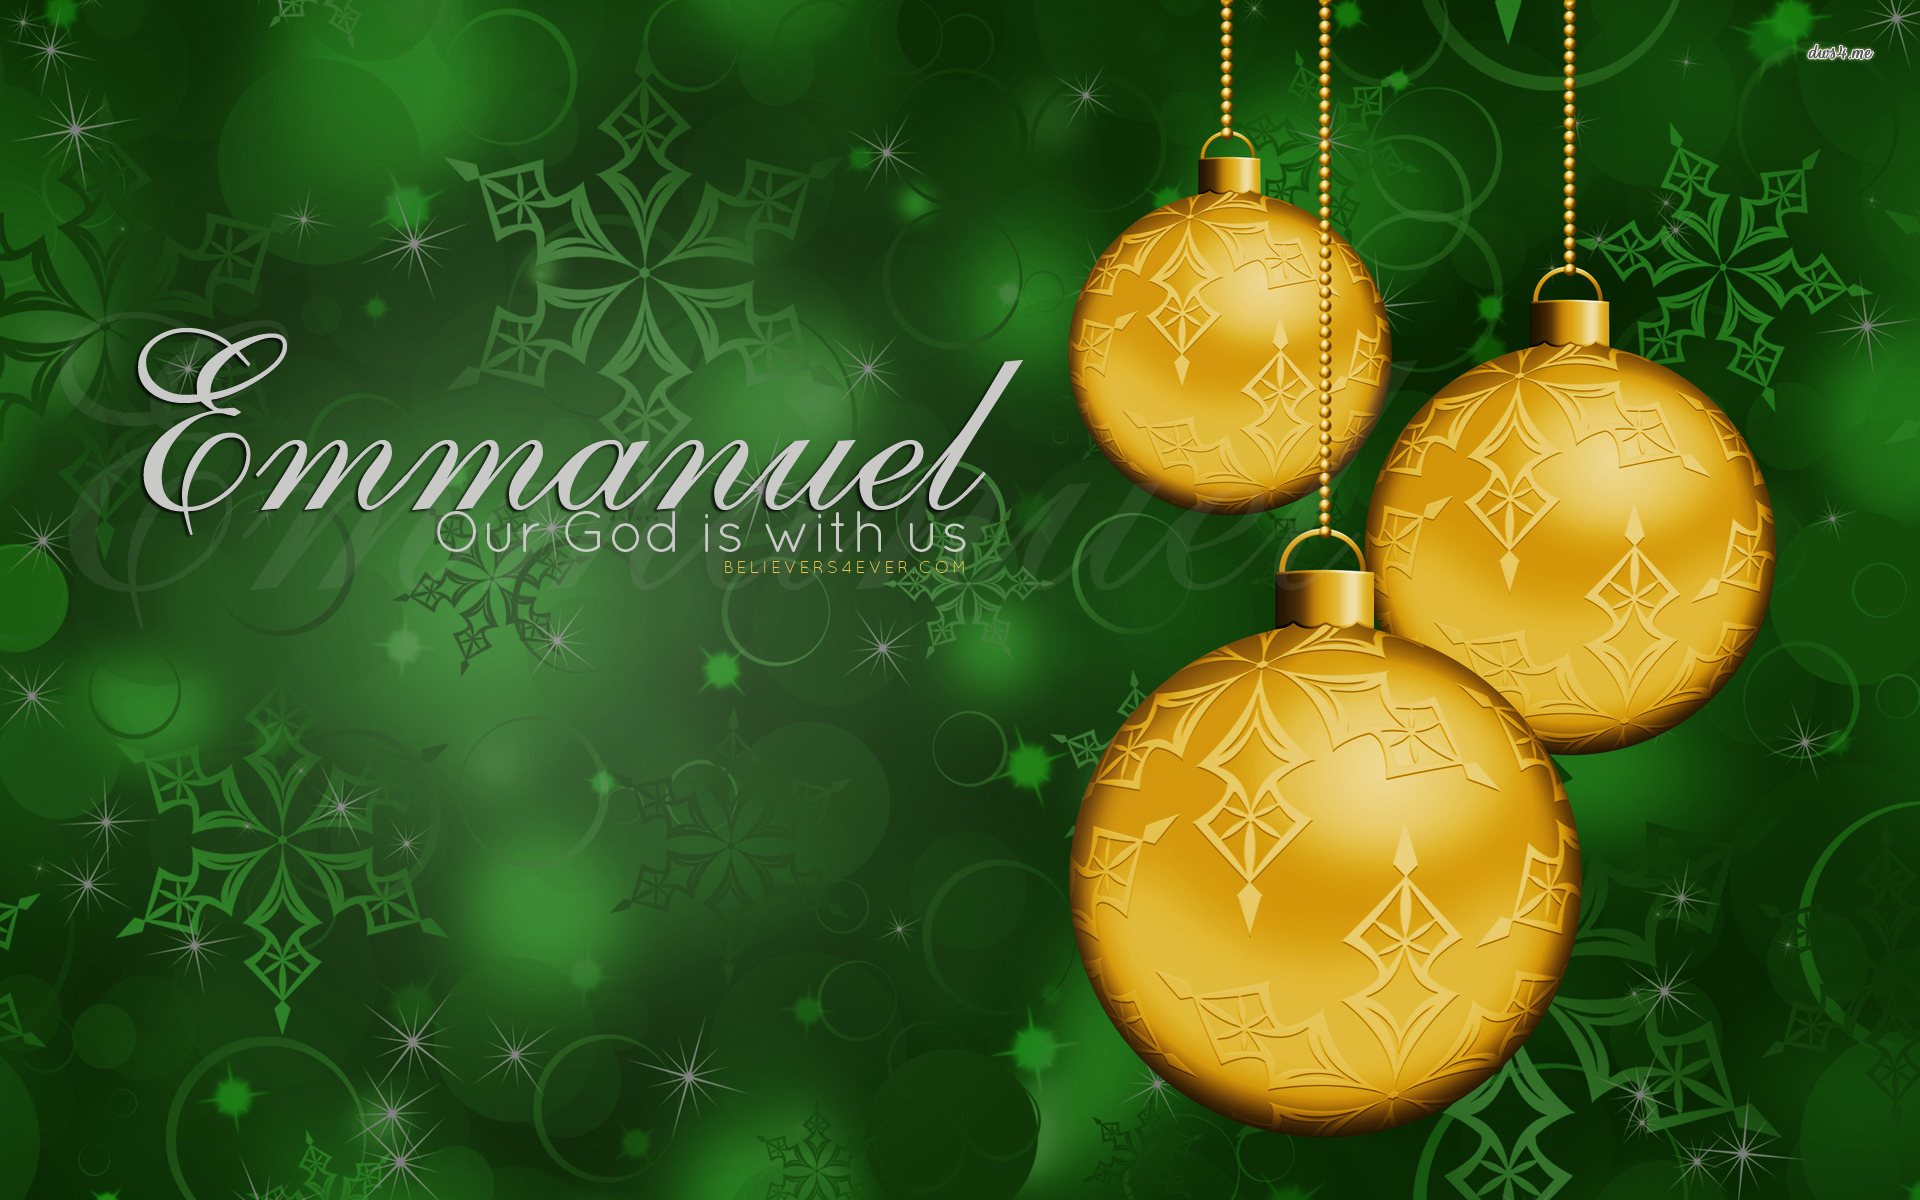 emmanuel christian christmas desktop wallpaper - Christian Christmas Wallpaper